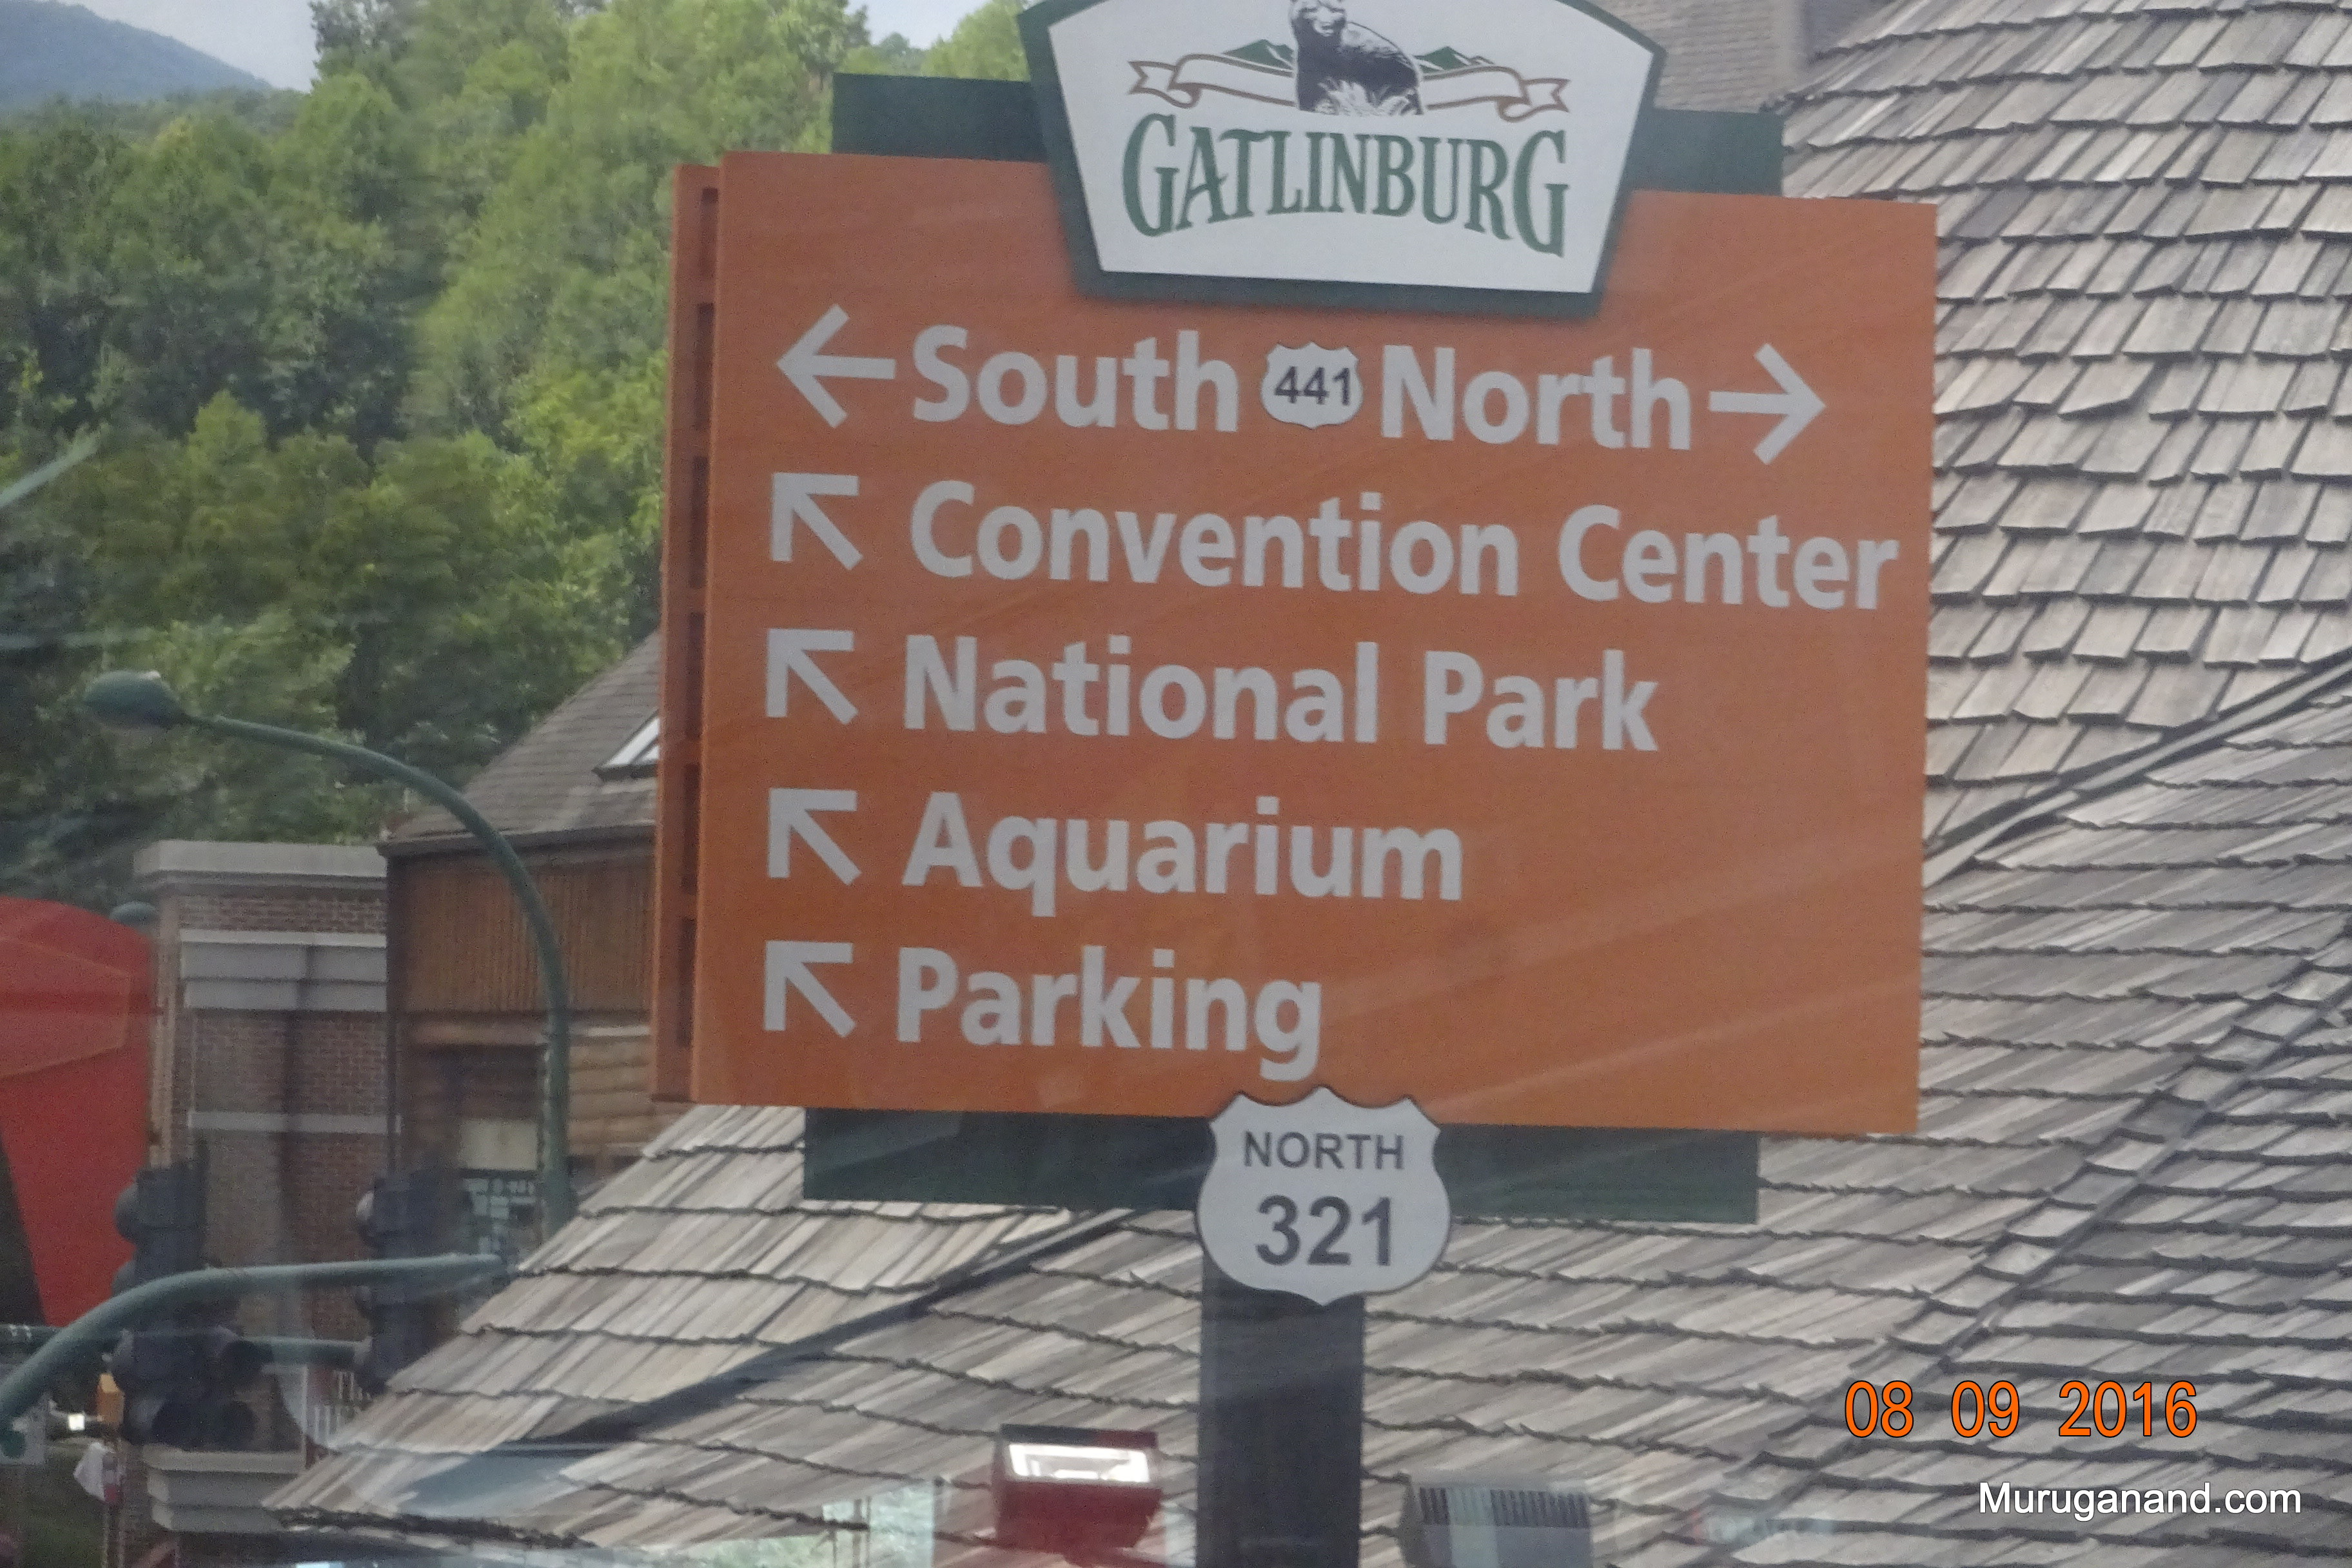 Gatlinburg is the gateway to the park in Tennessee